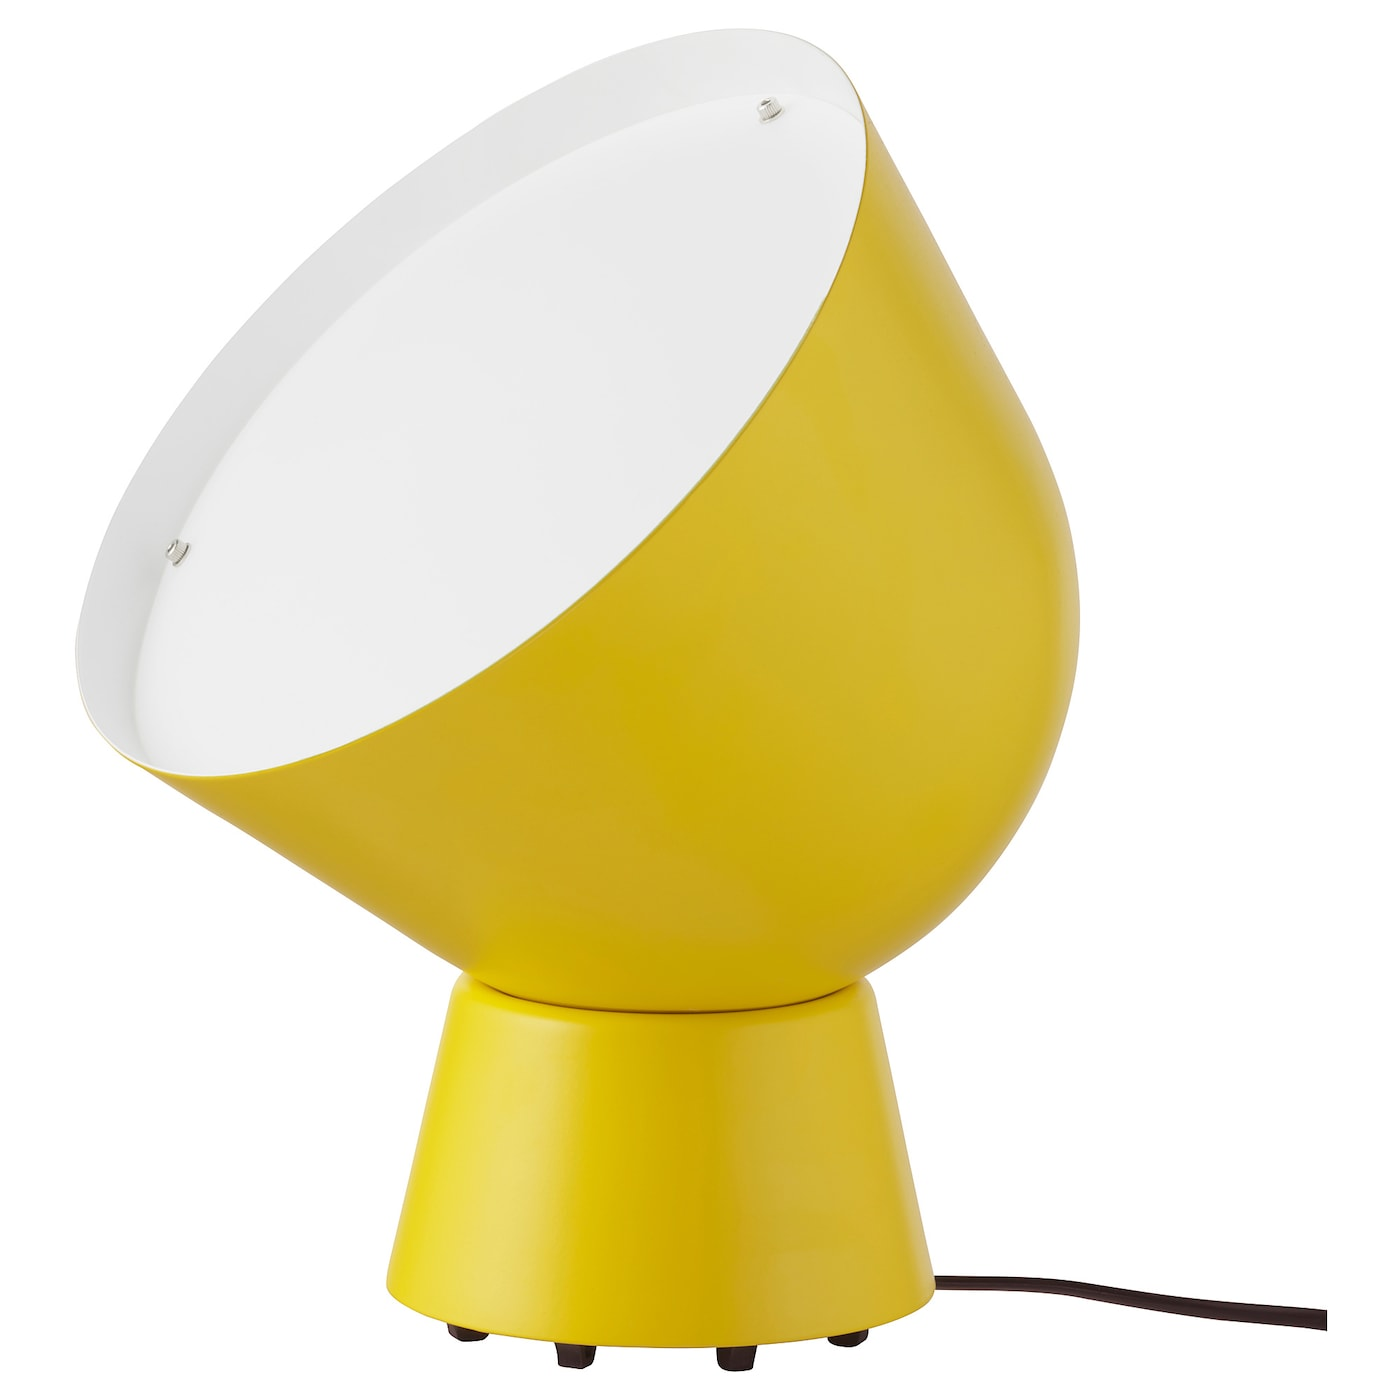 IKEA IKEA PS 2017 table lamp